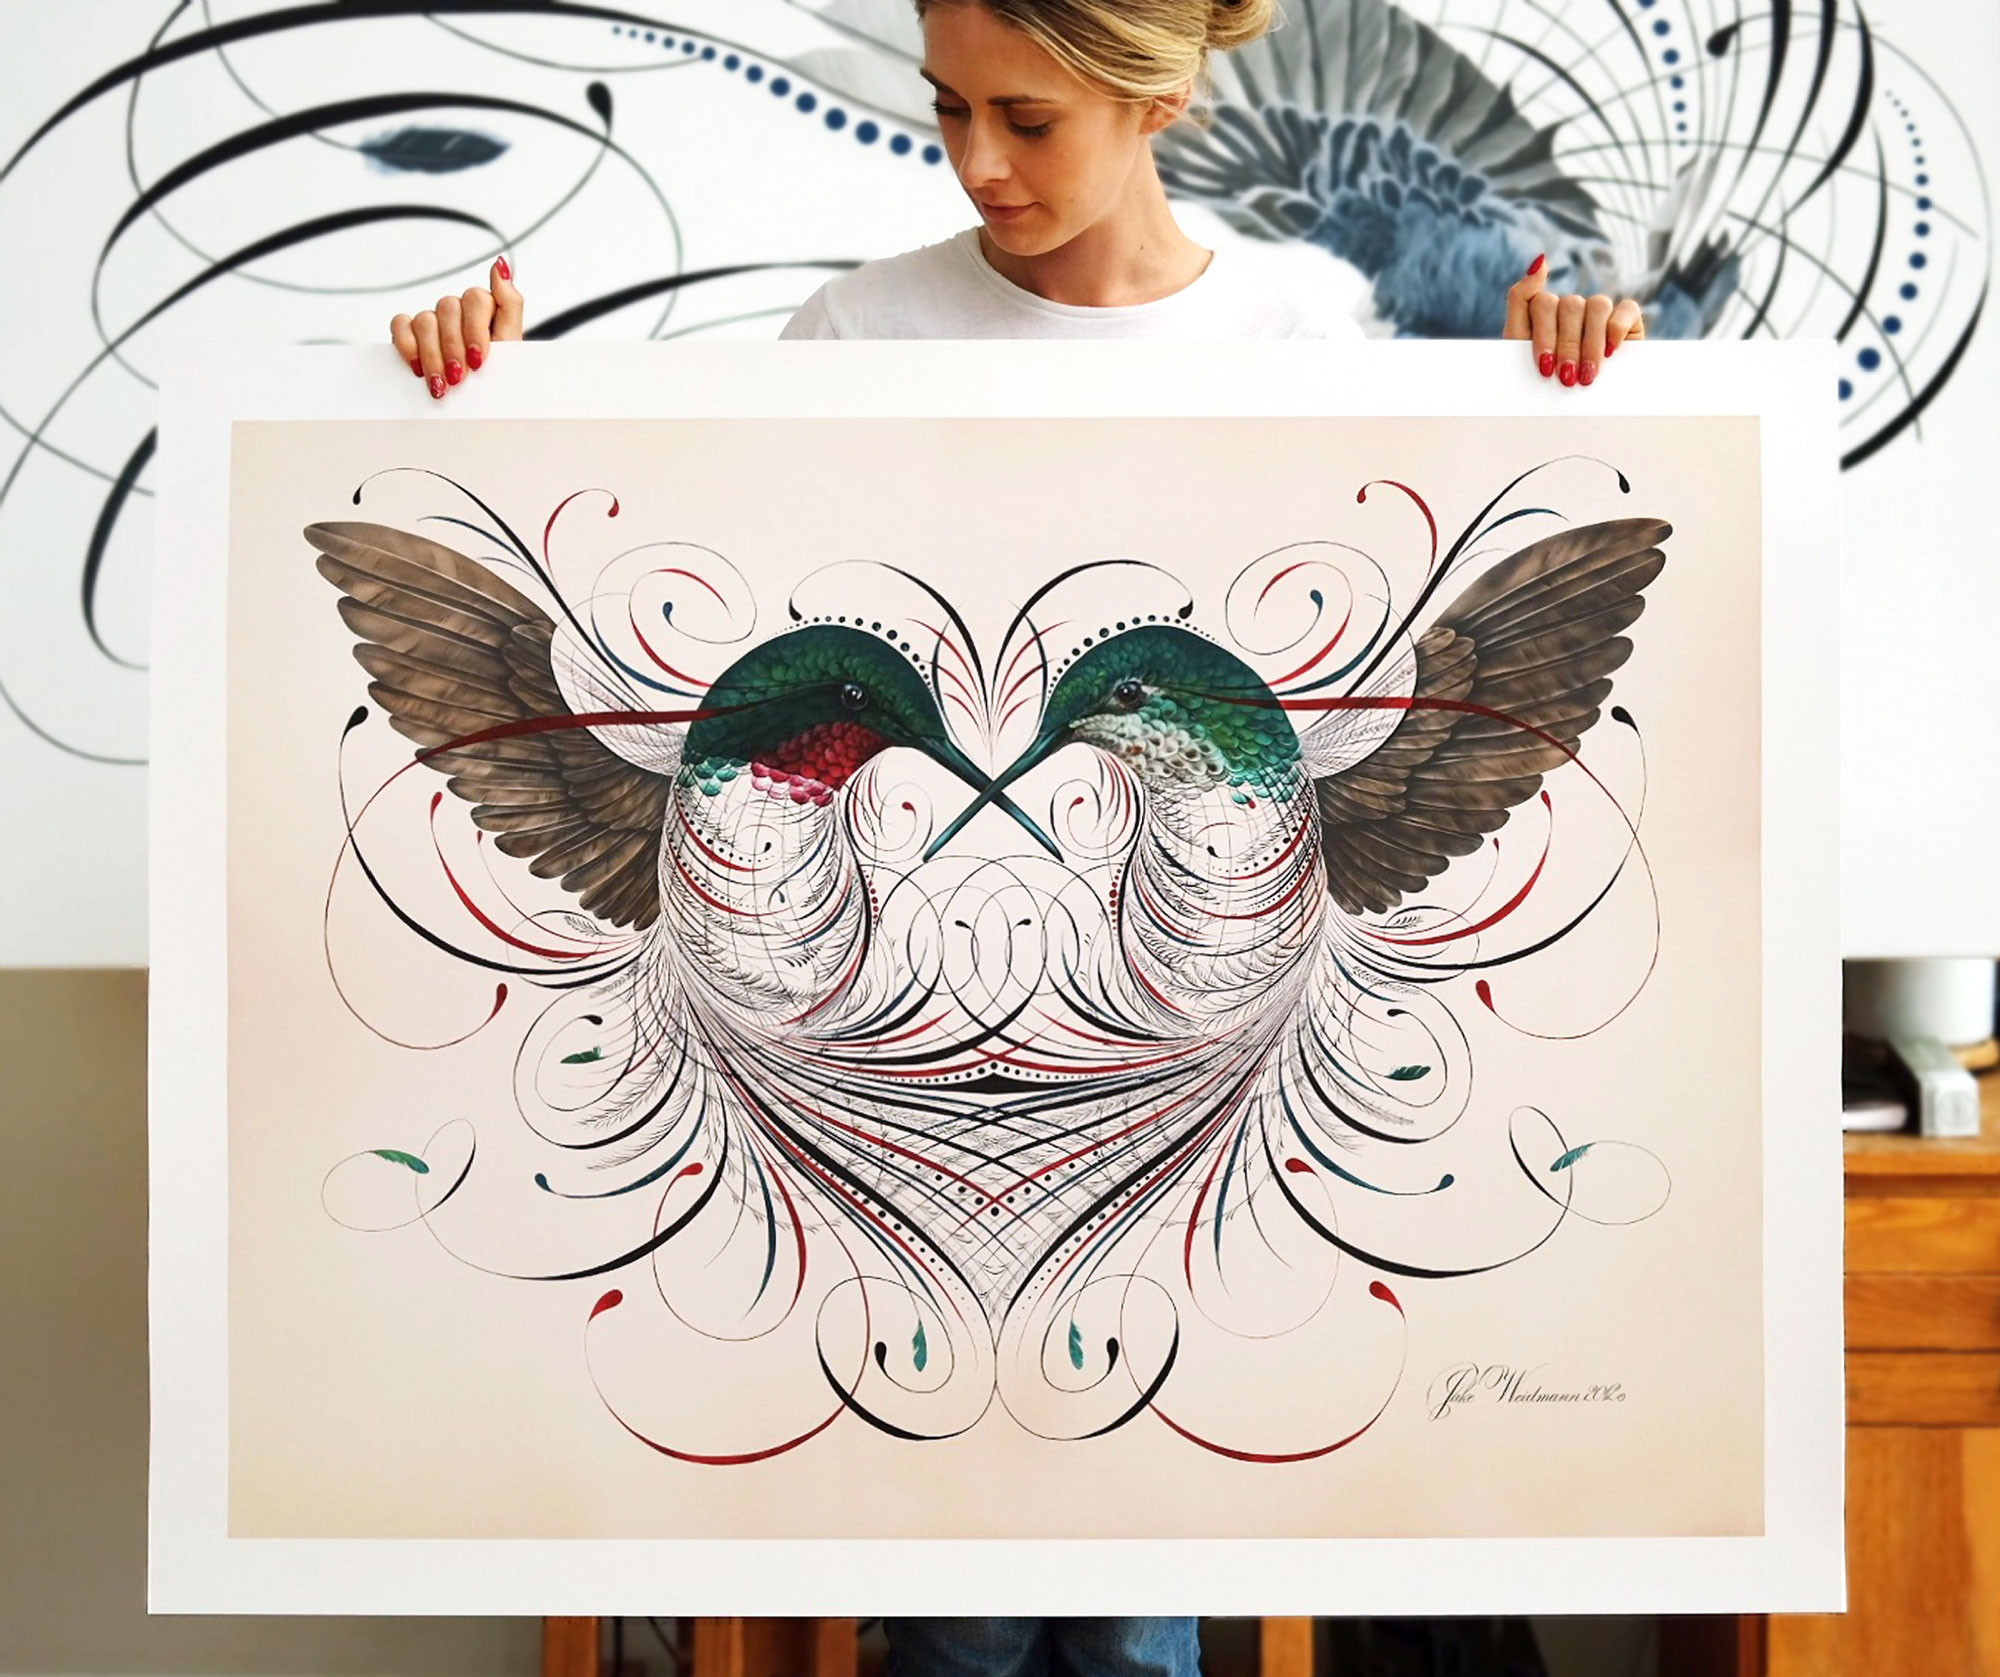 """Hannah Weidmann holds husband Jake's """"Humming a Love Song."""" Gouache and acrylic. 2012.  The hummingbird is romanticized in this design as it pays tribute to the vintage technique of off-hand flourishing. Like the hummingbird, the power of this message is in its details. The entanglement of line work speaks to the essence of love in combining two separate bodies, male and female, as a unified whole. Small imperfections grafted into the symmetry establish its own perfection."""